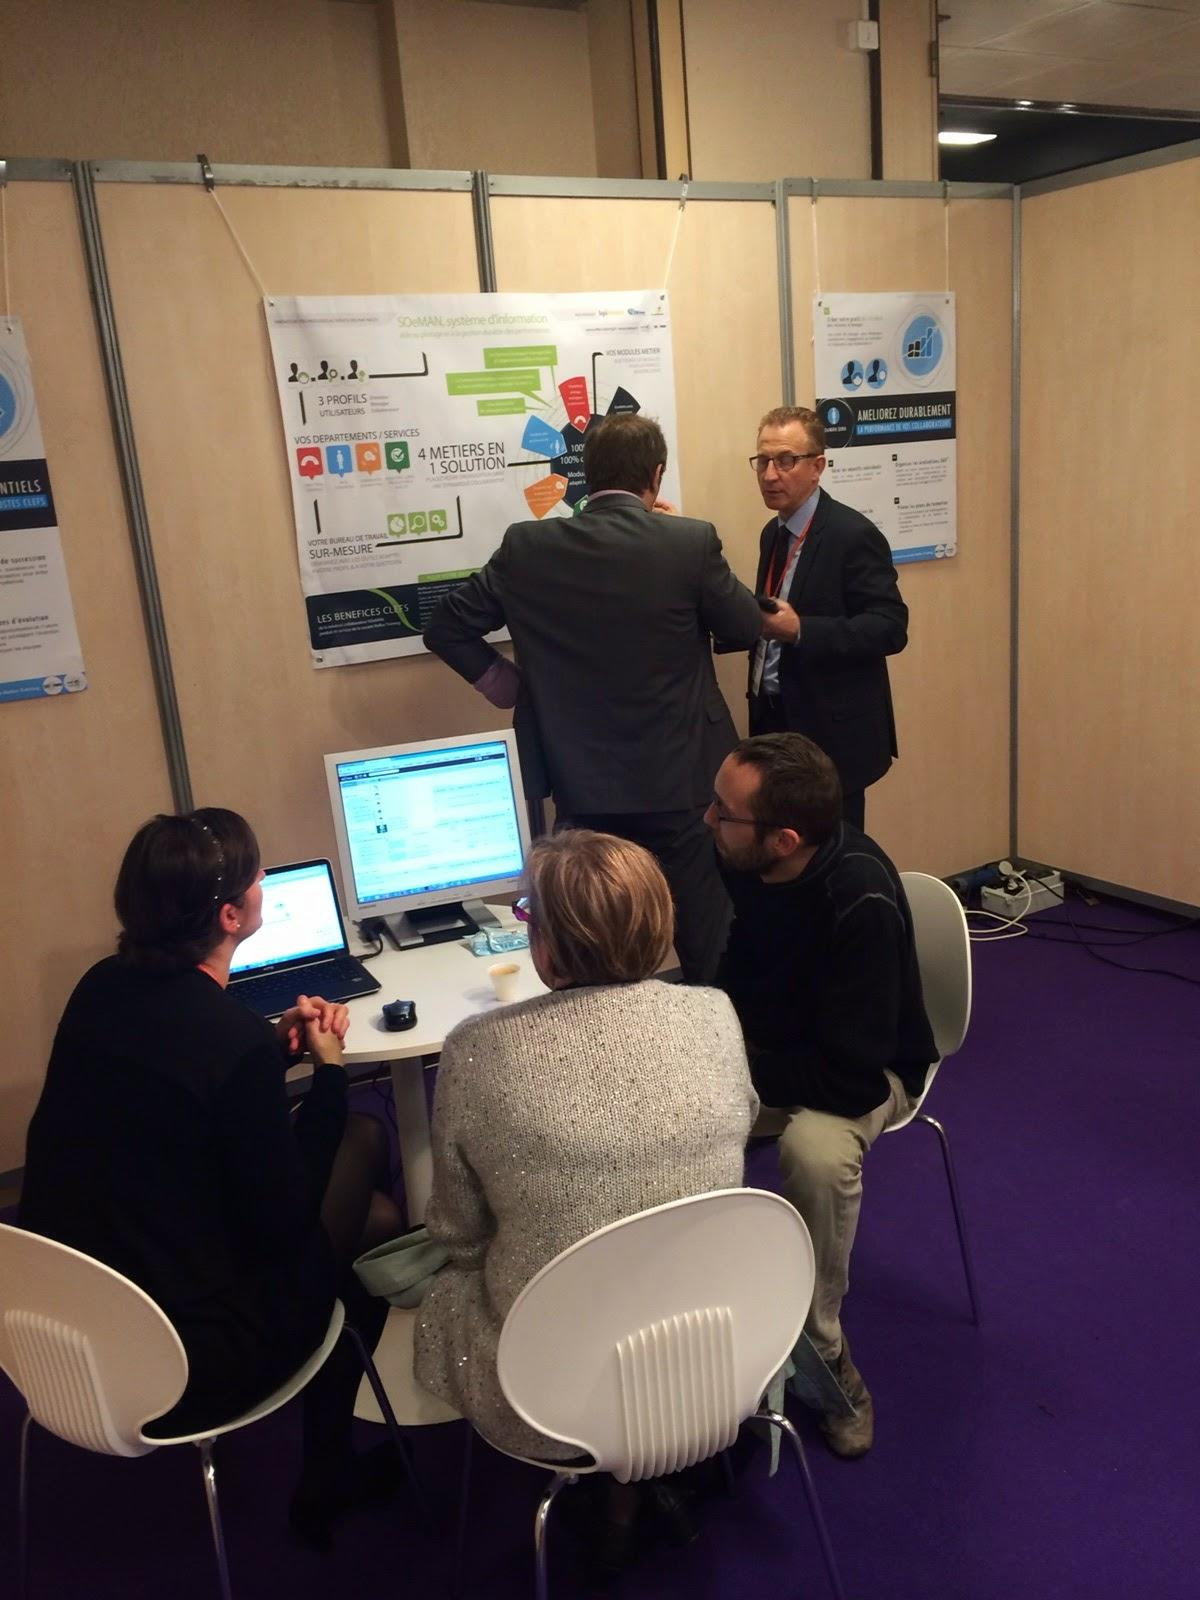 Salon solutions ressources humaines 2014 rencontre entre for Salon des ressources humaines